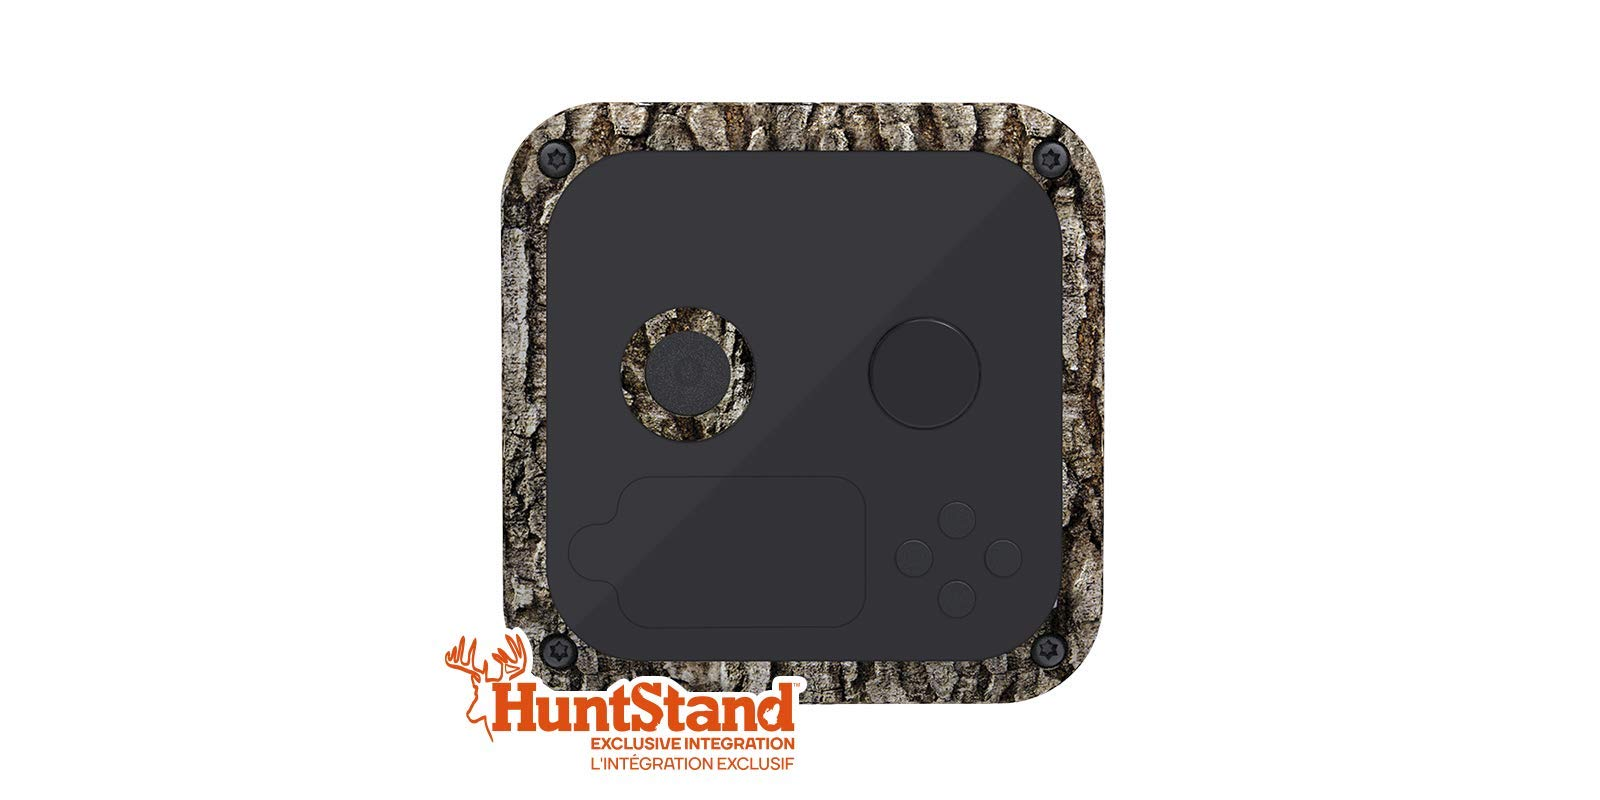 Wildgame Innovations Shadow Micro Cam 16 megapixel Lightsout Trail Camera, No Flash Scouting Camera with Both Daytime/Nighttime Video and Still Images, Wildlife and Security Purposes, Tru Bark Camo